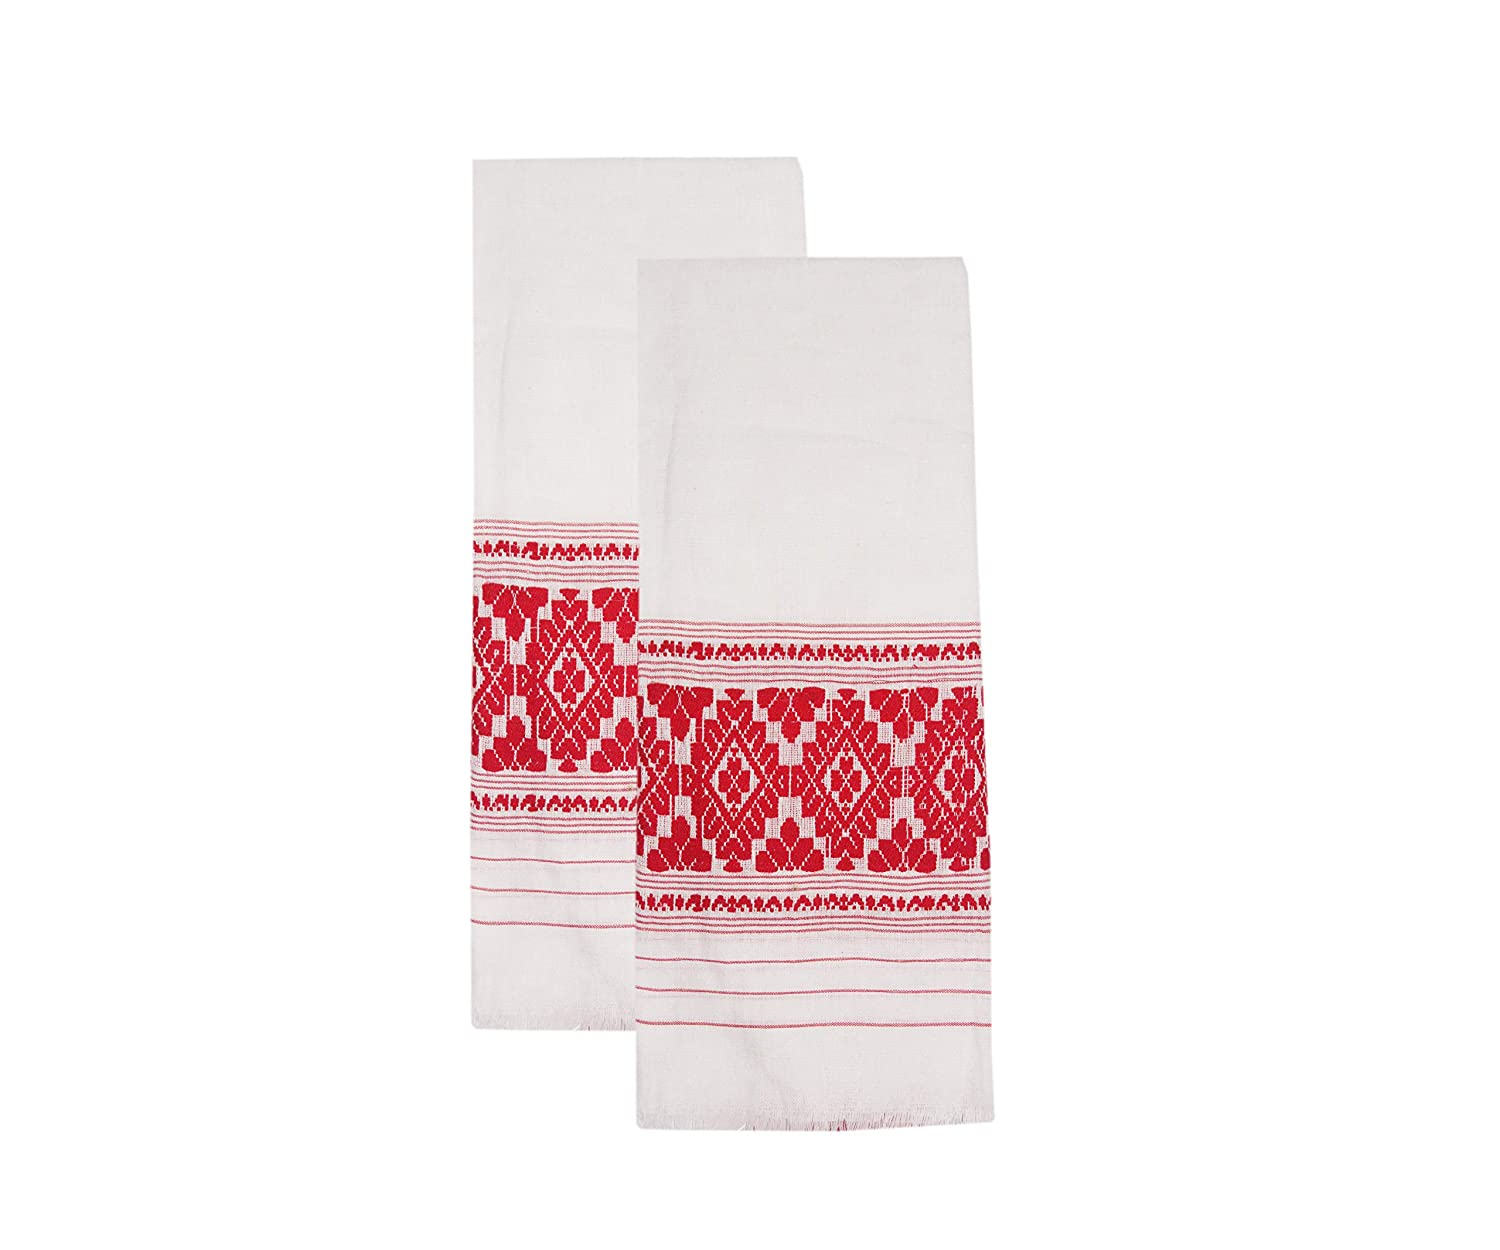 EPIC STORE RETAILER Assamese Traditional Cotton Gamosa, 50x22-inch (White) - Pack of 2